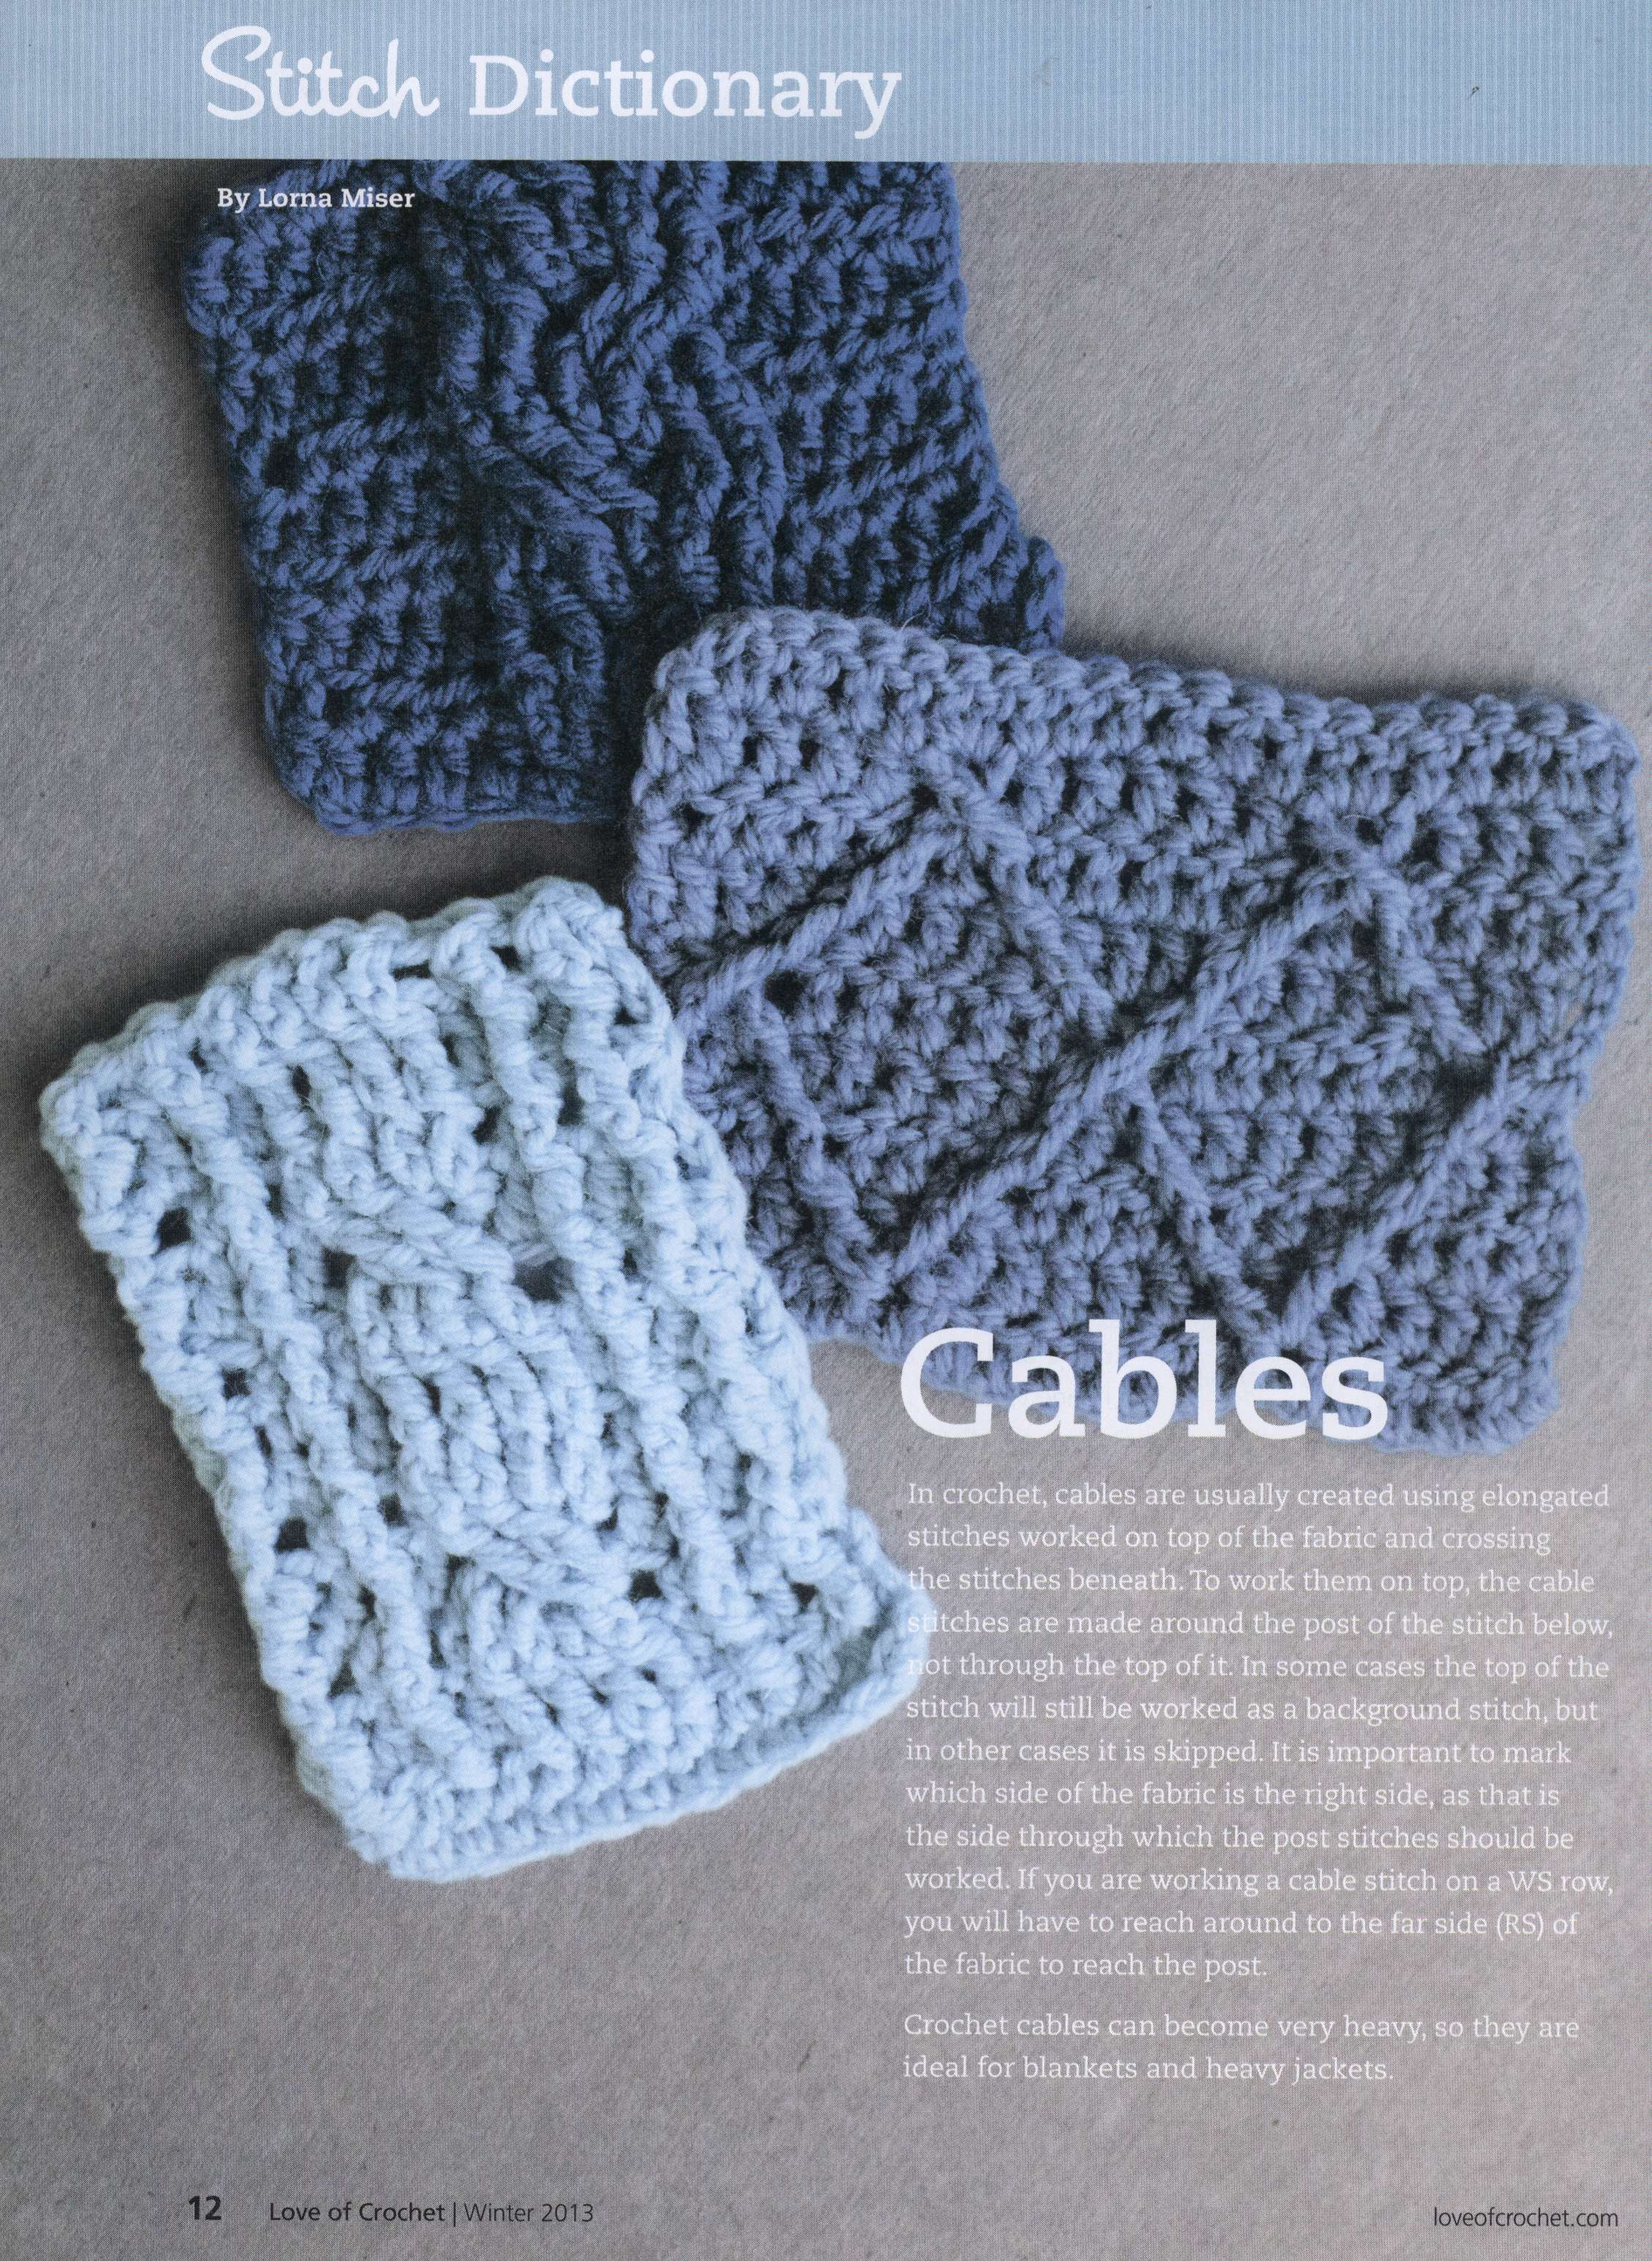 Crocheting Cables : Crochet cable stitches, wide cable stitch, long cable stitch and ...